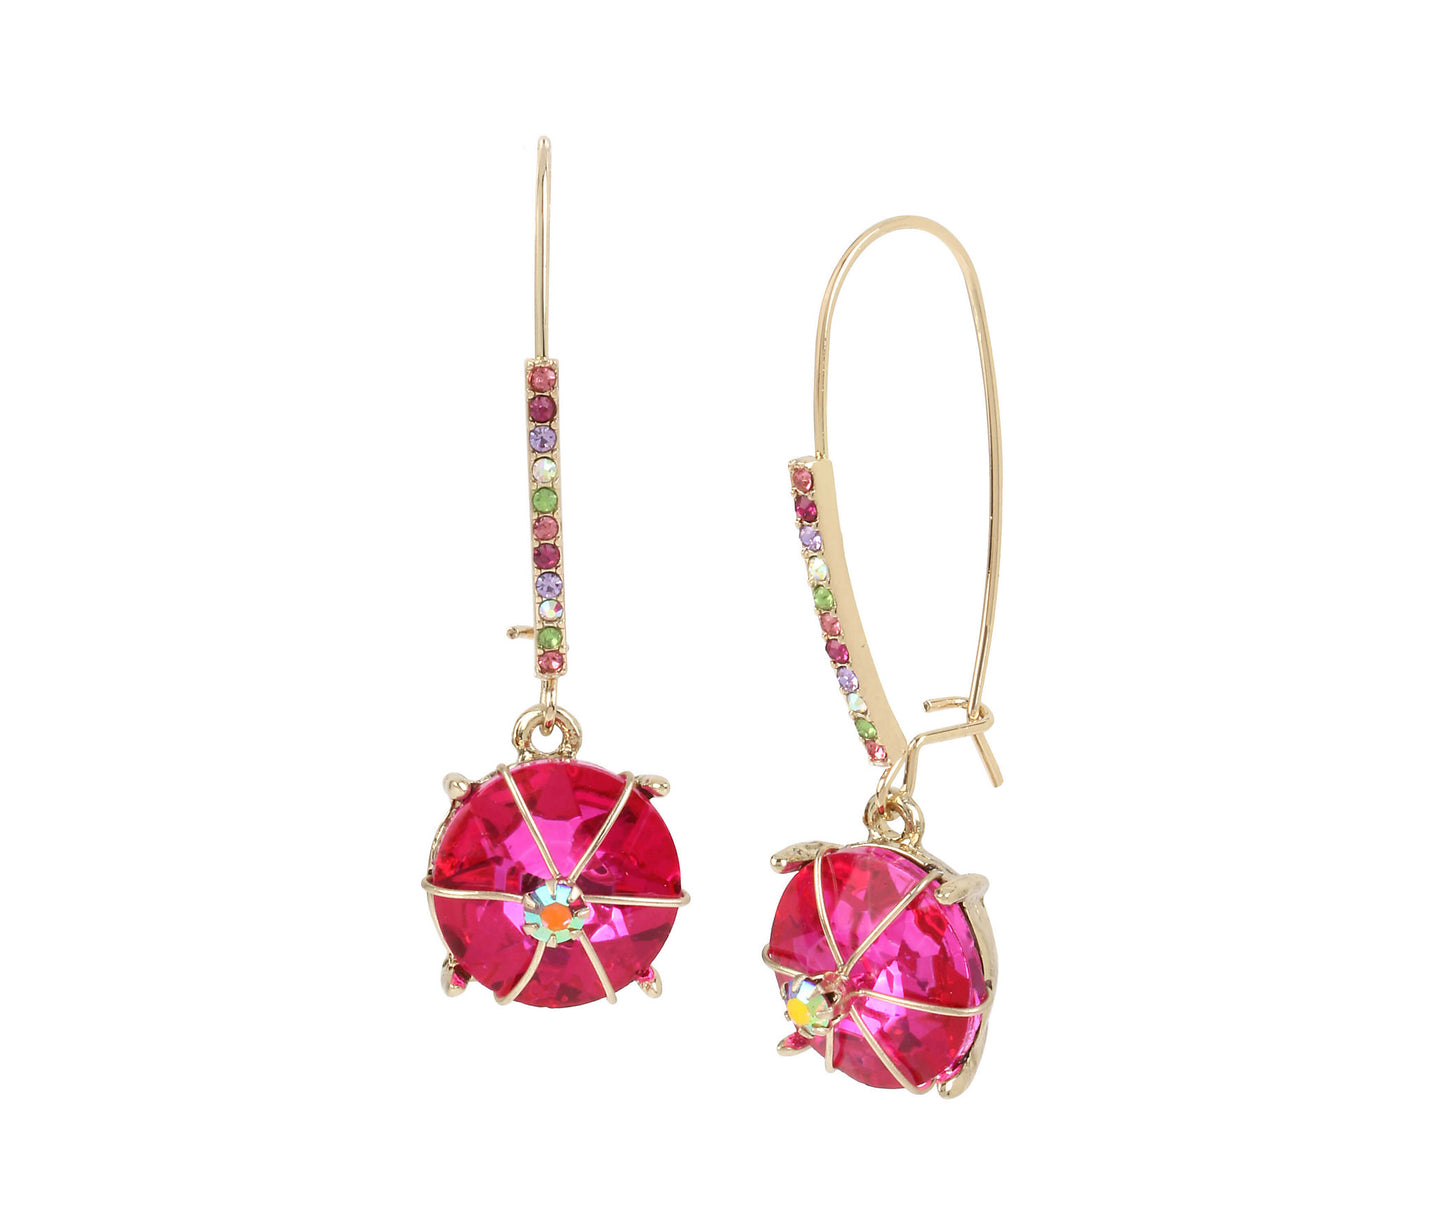 BETSEYS FUNFETTI STONE HOOK EARRINGS PINK - JEWELRY - Betsey Johnson